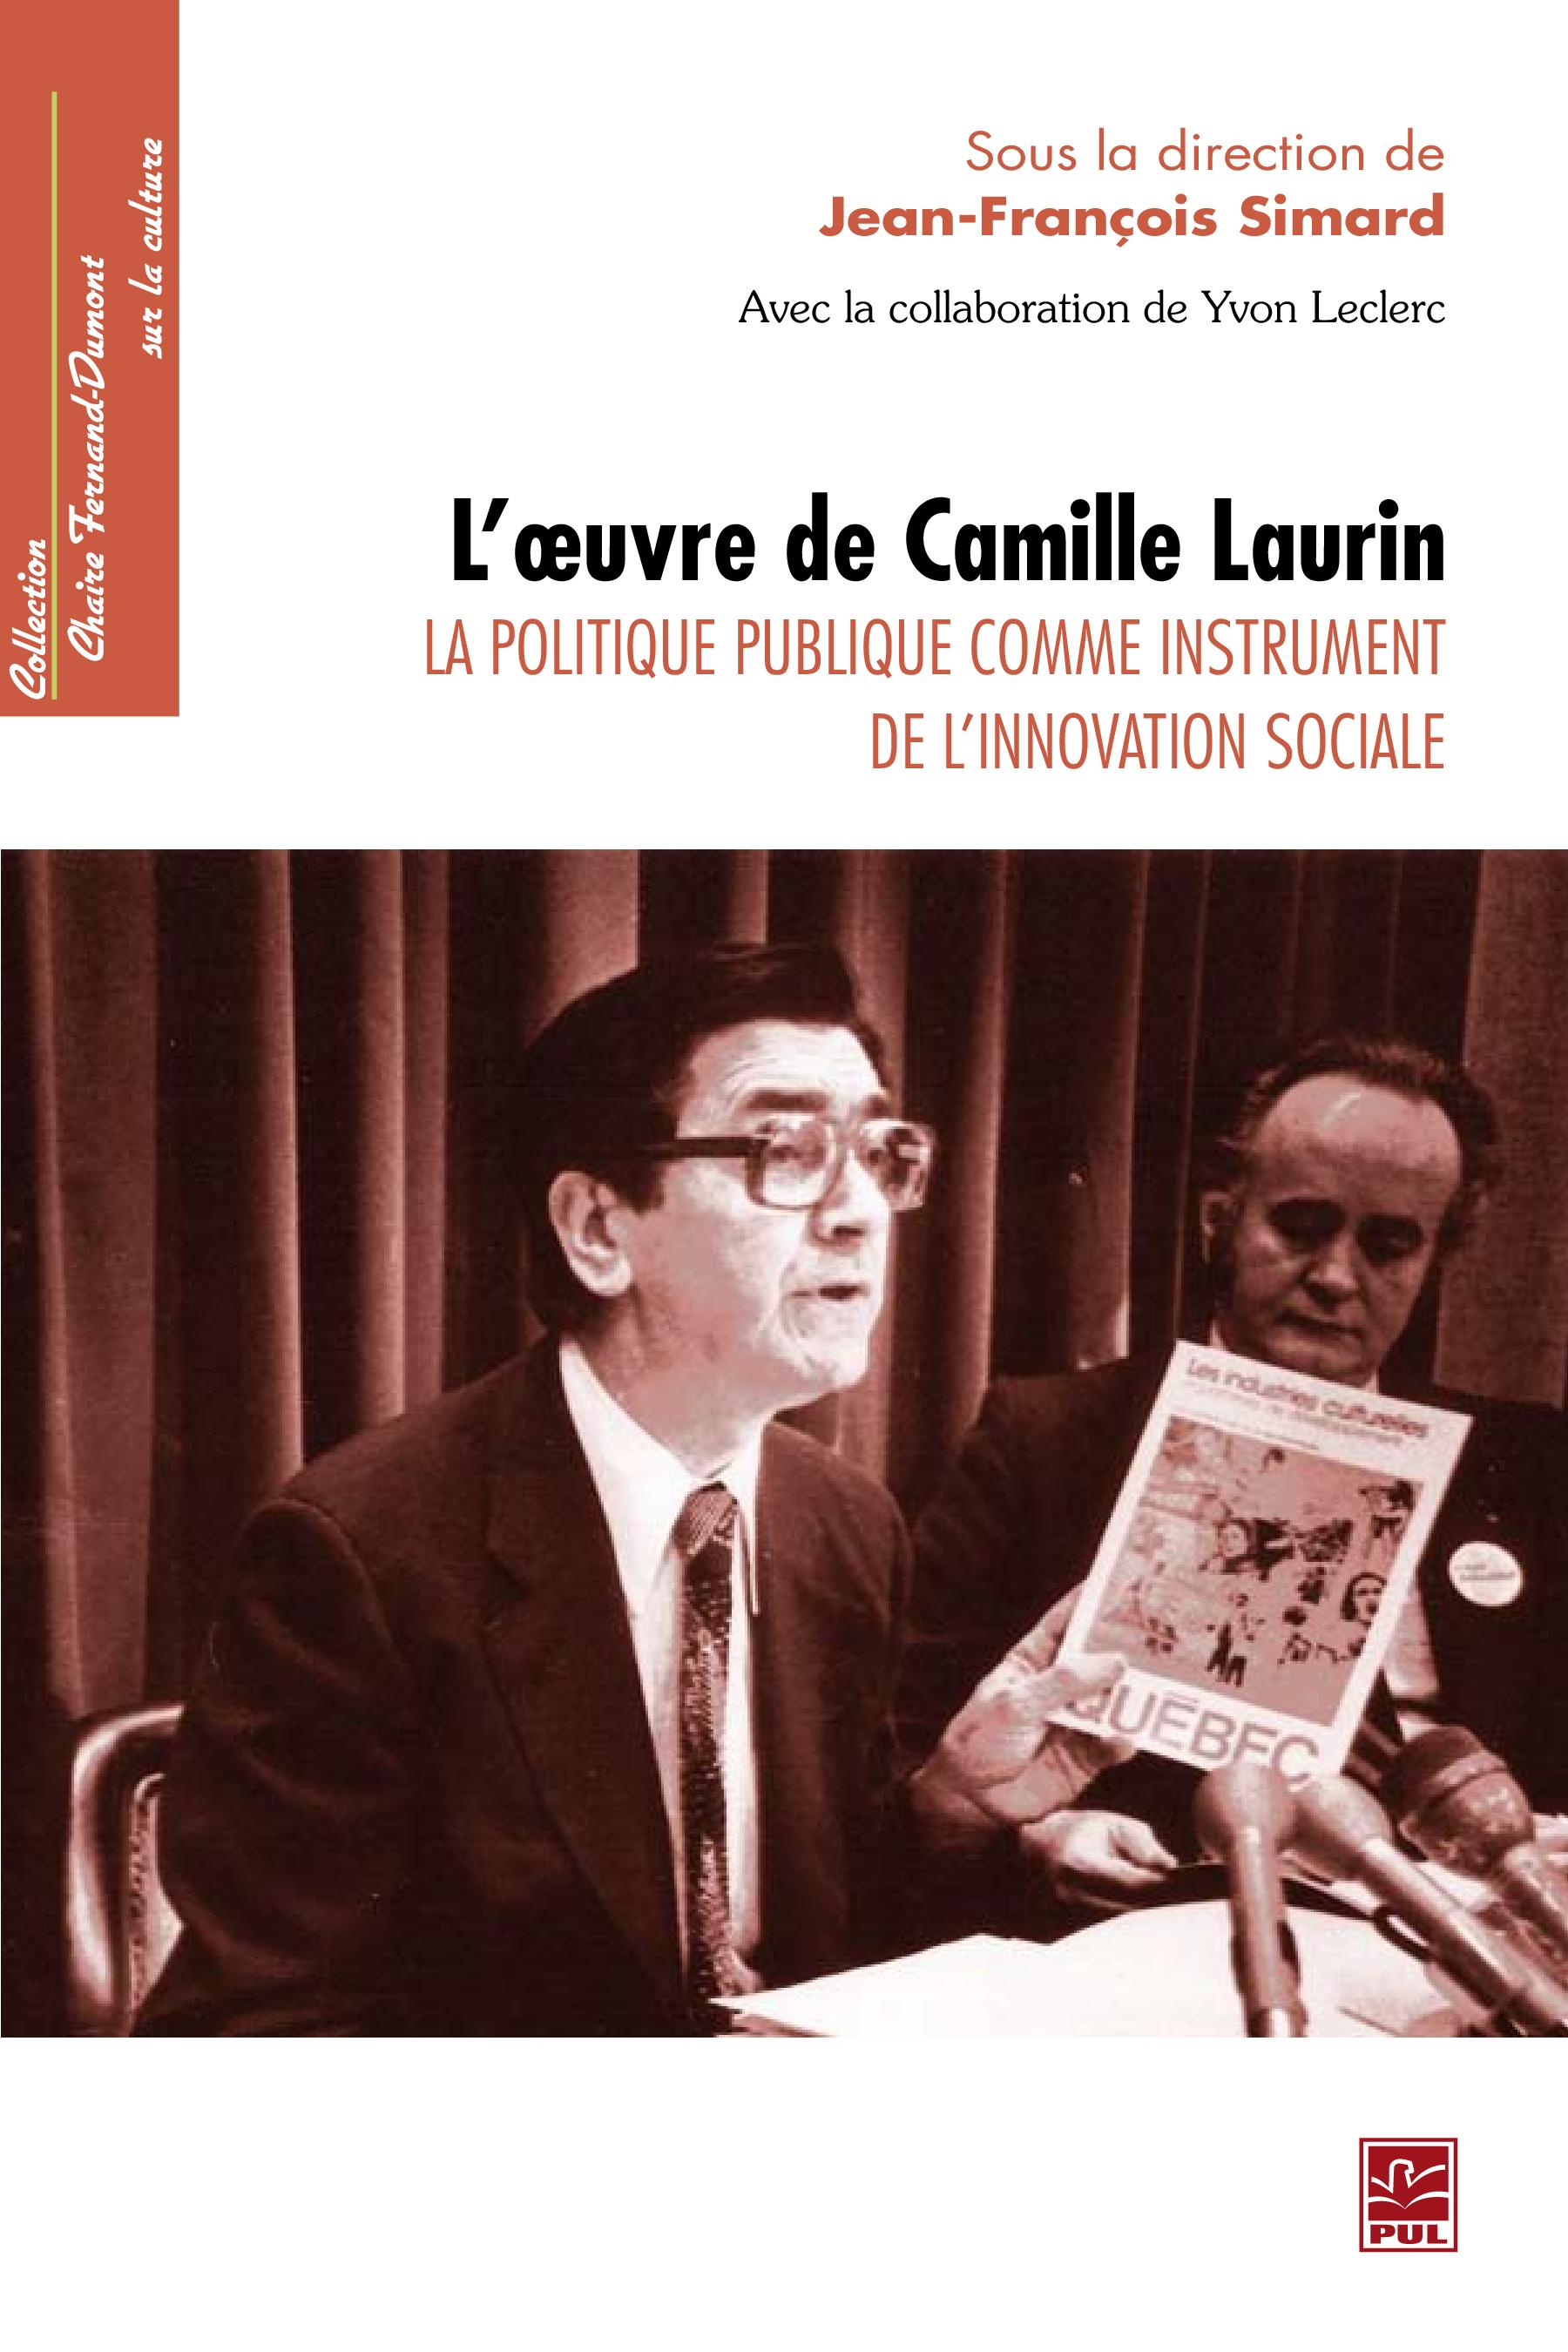 L'oeuvre de Camille Laurin